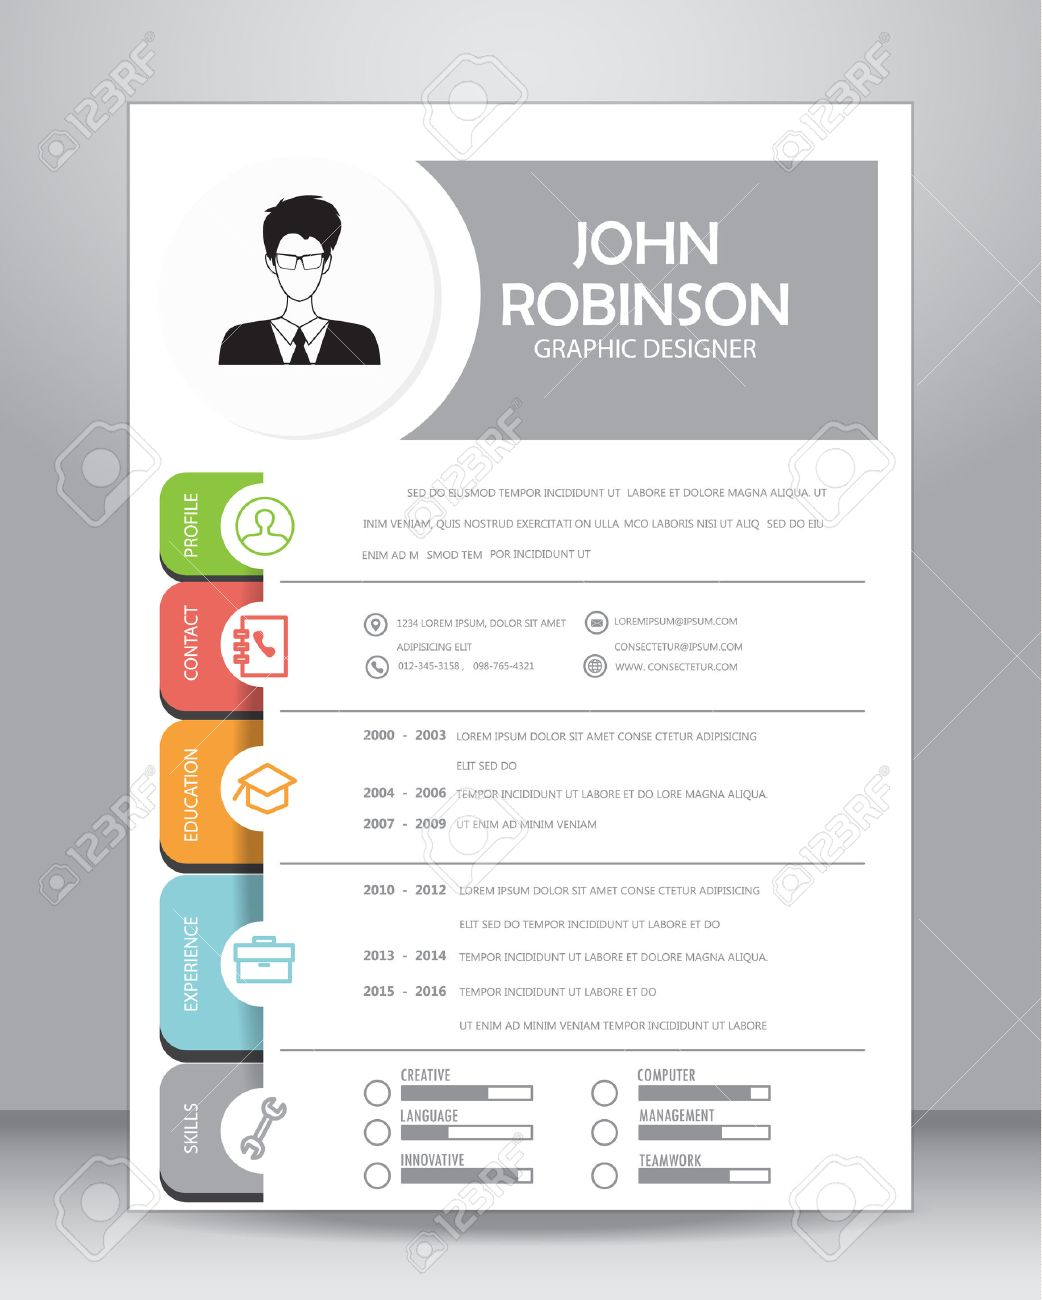 Job resume or CV template layout template in A4 size. - 58731169